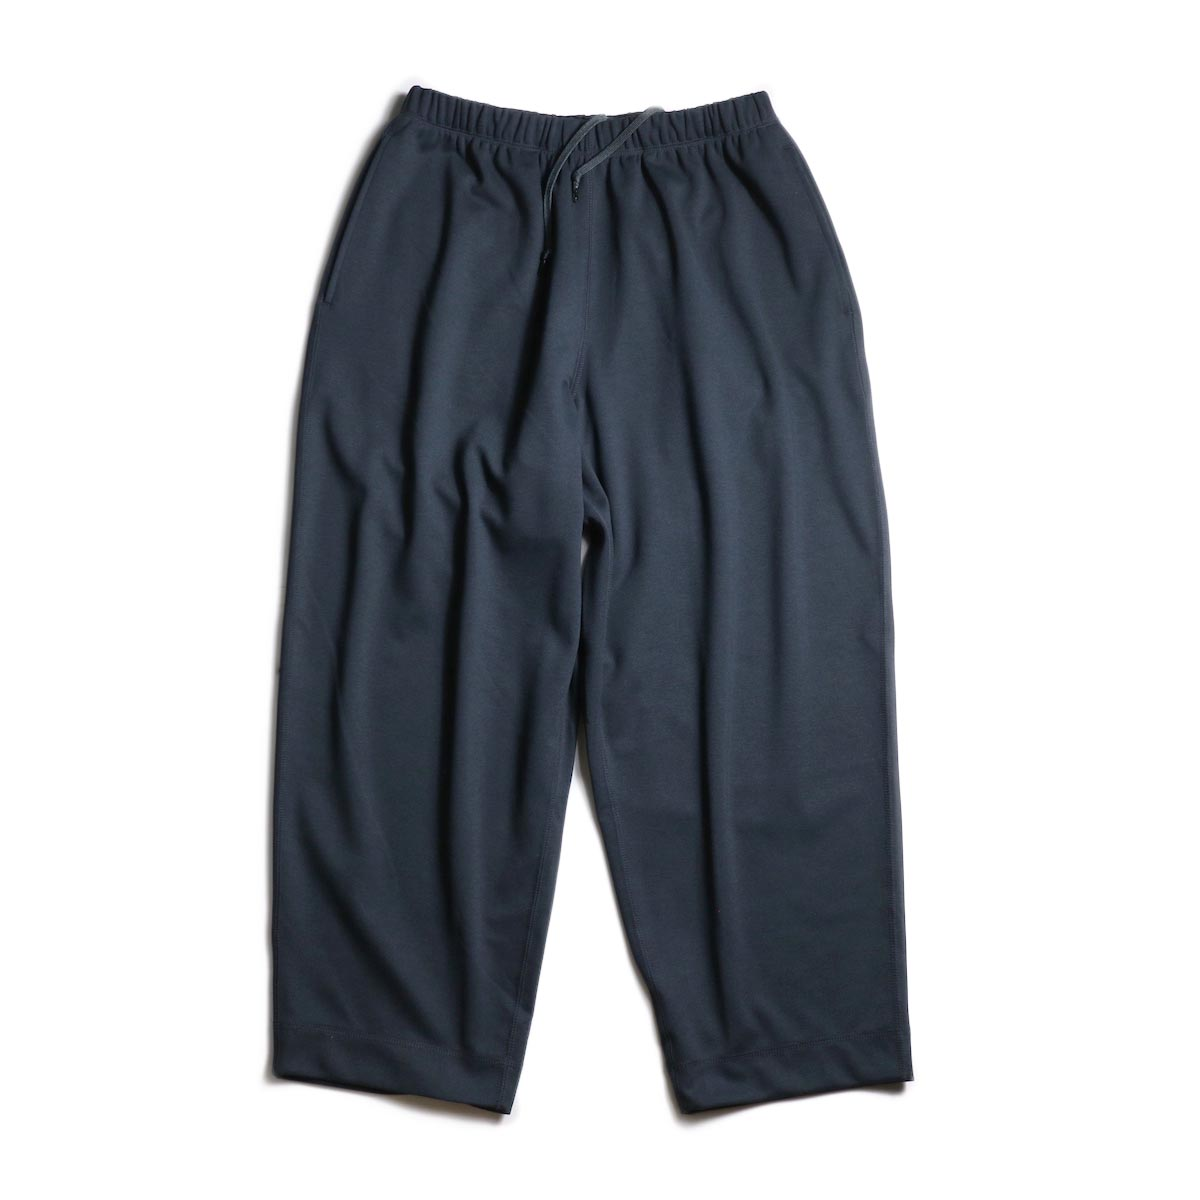 N.HOOLYWOOD / 24RCH-090 Wide Easy Pants (Charcoal)